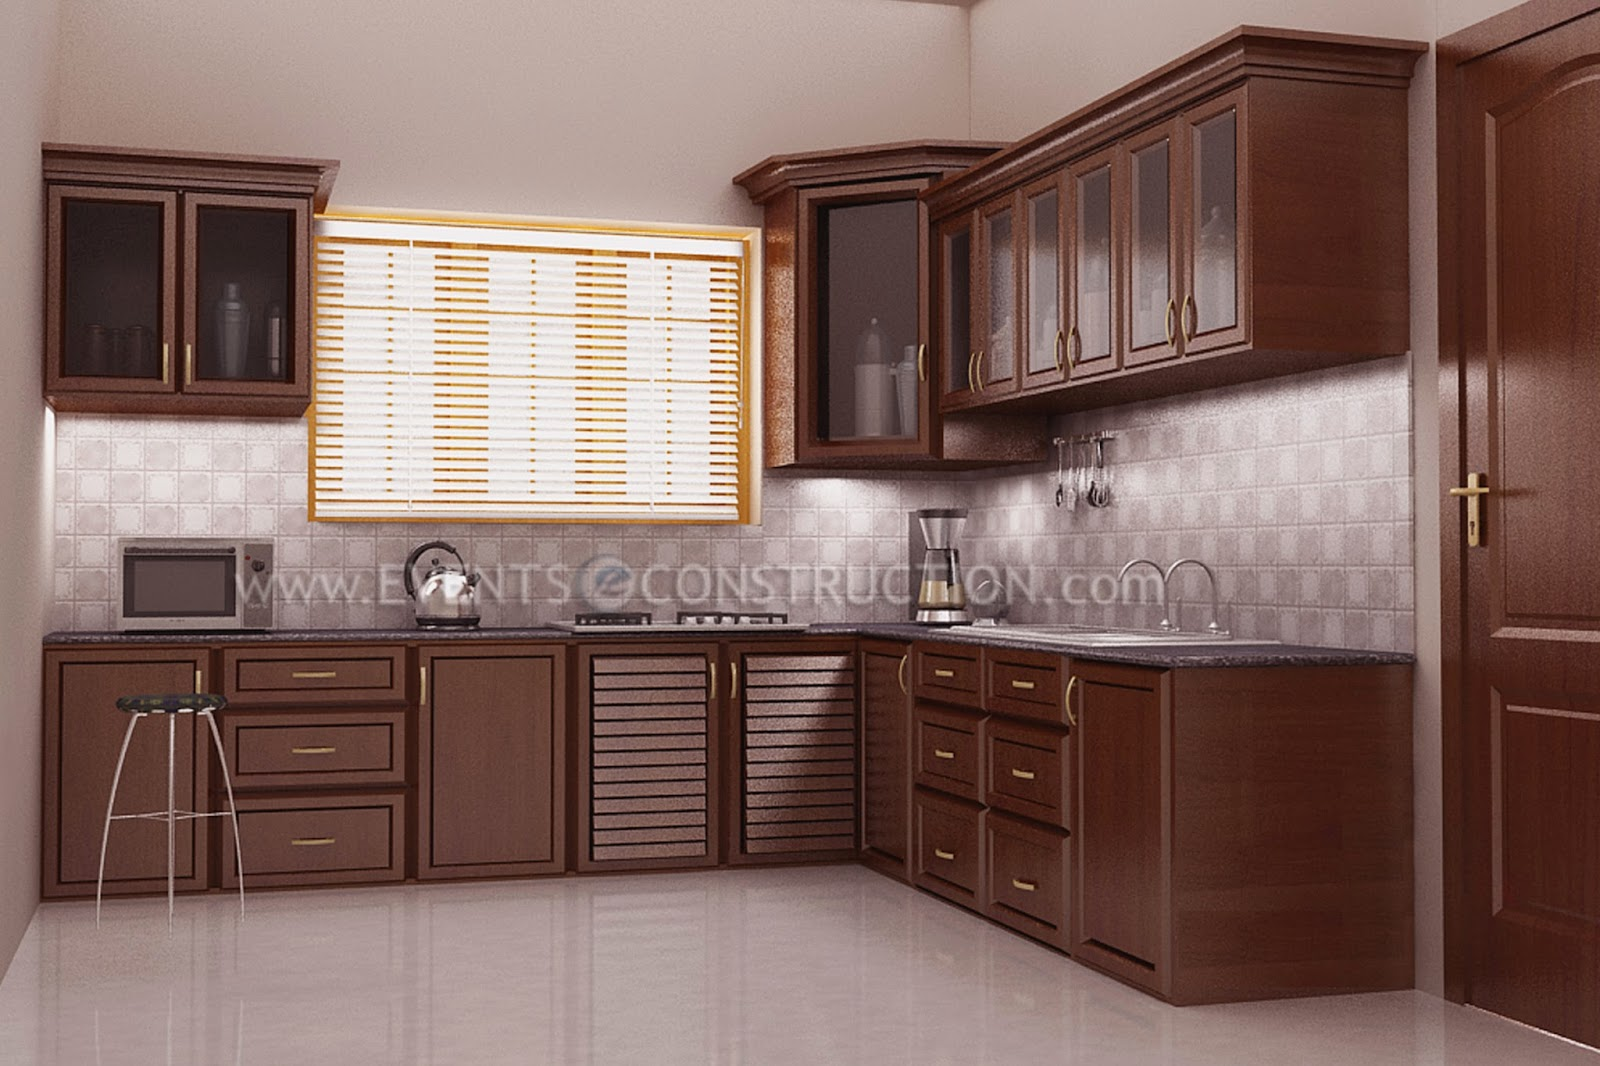 Evens construction pvt ltd kitchen design with wooden for Kitchen interior design images